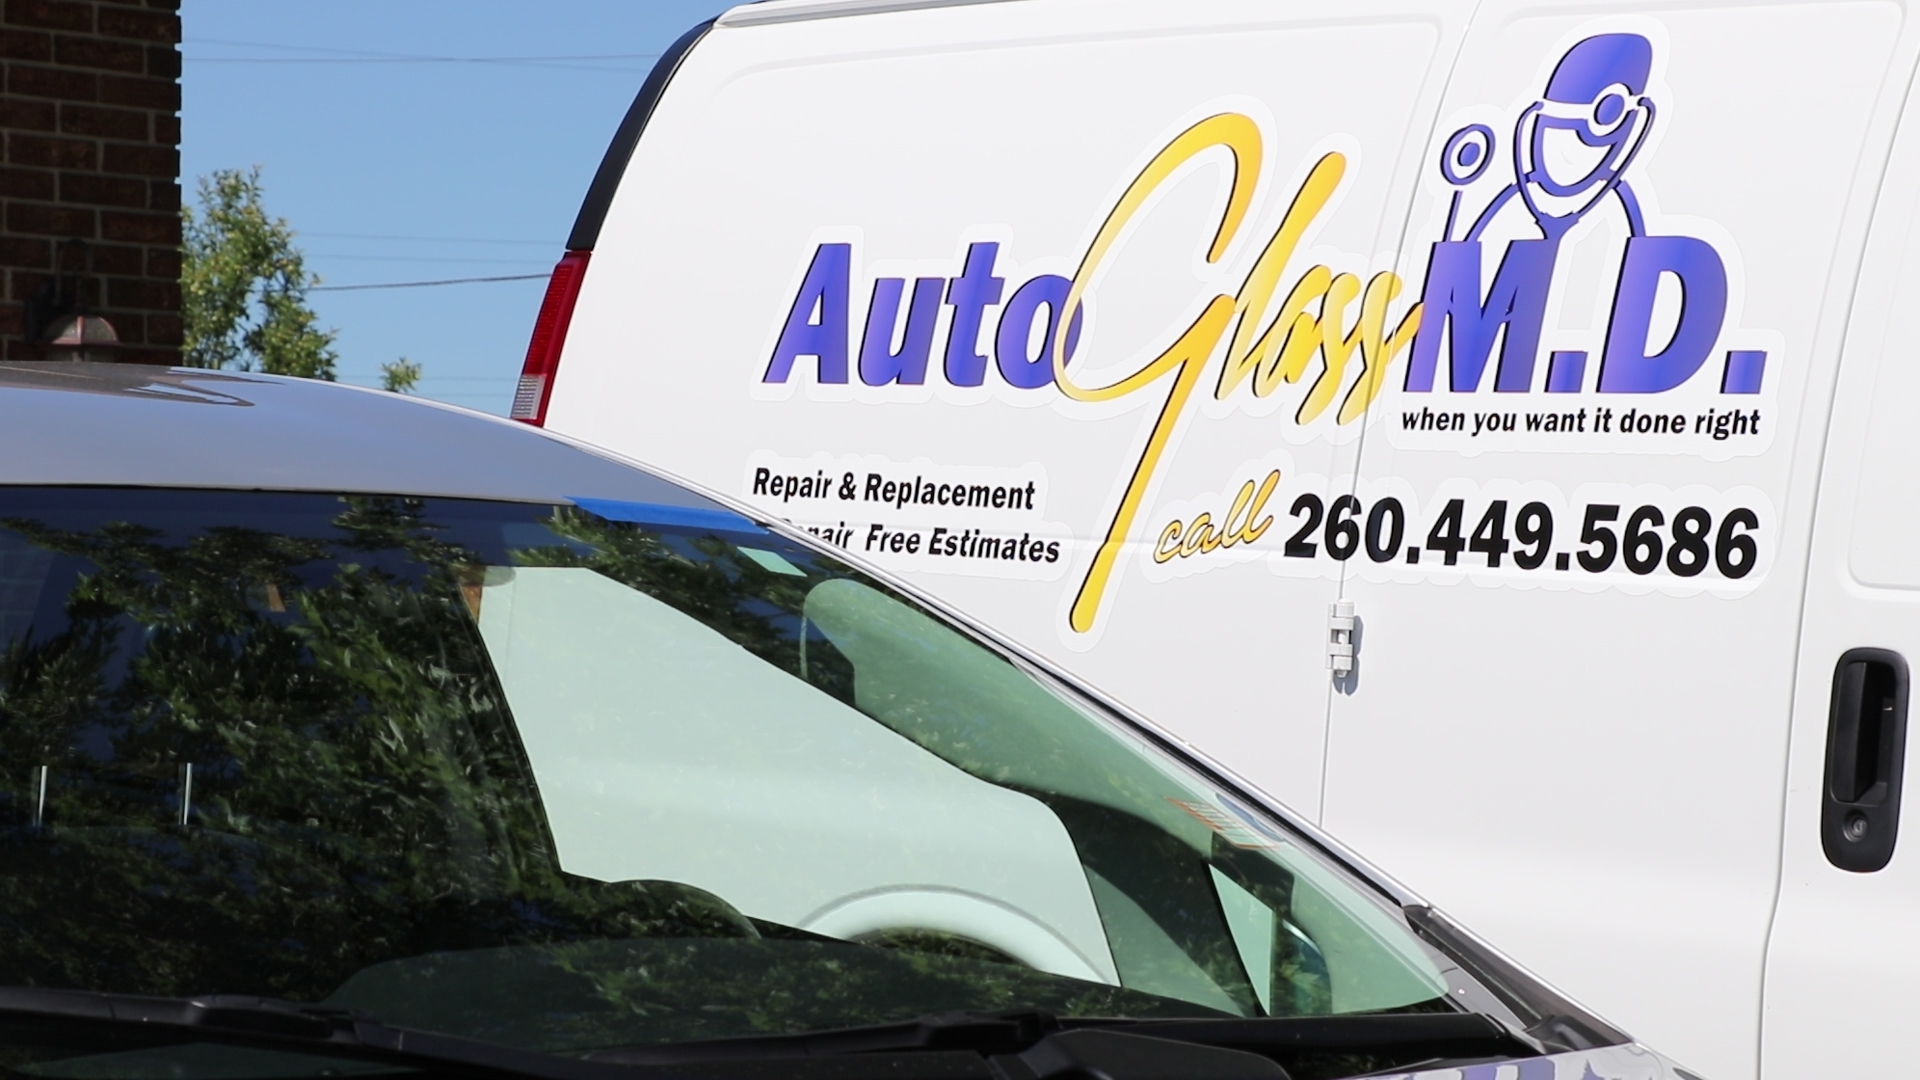 Auto glass repair quotes quotes of the day for Window replacement quote